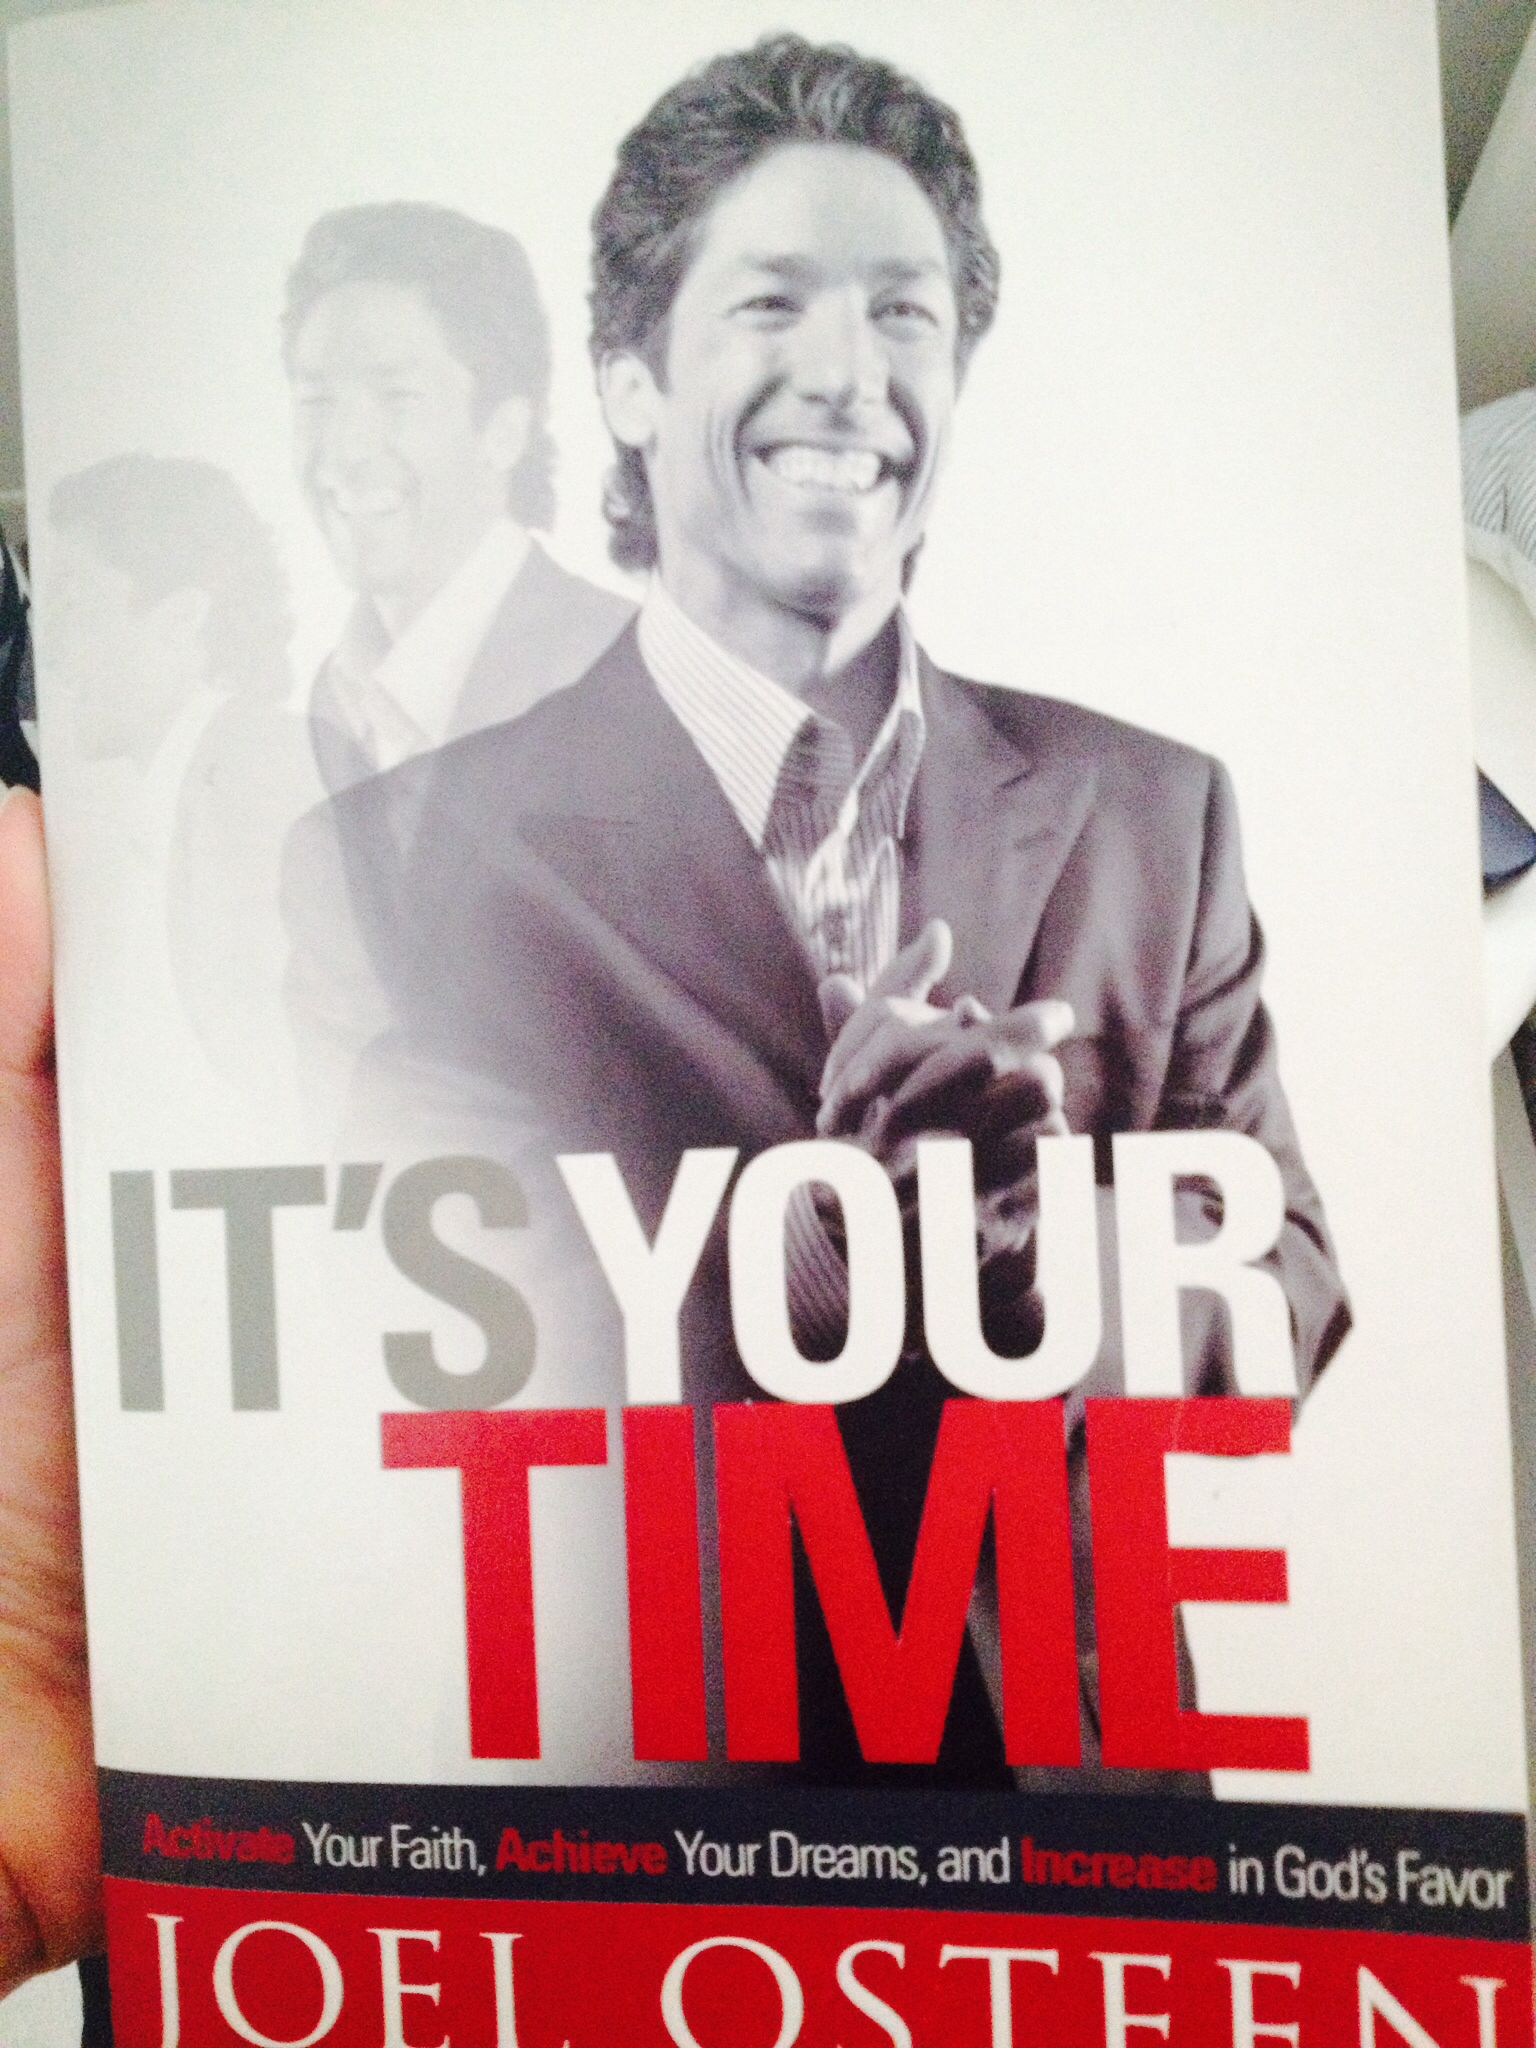 """There is so much truth in this book. Too many pages to quote. #joelosteen #BYBY """"You have everything you need right now to achieve your purpose"""""""